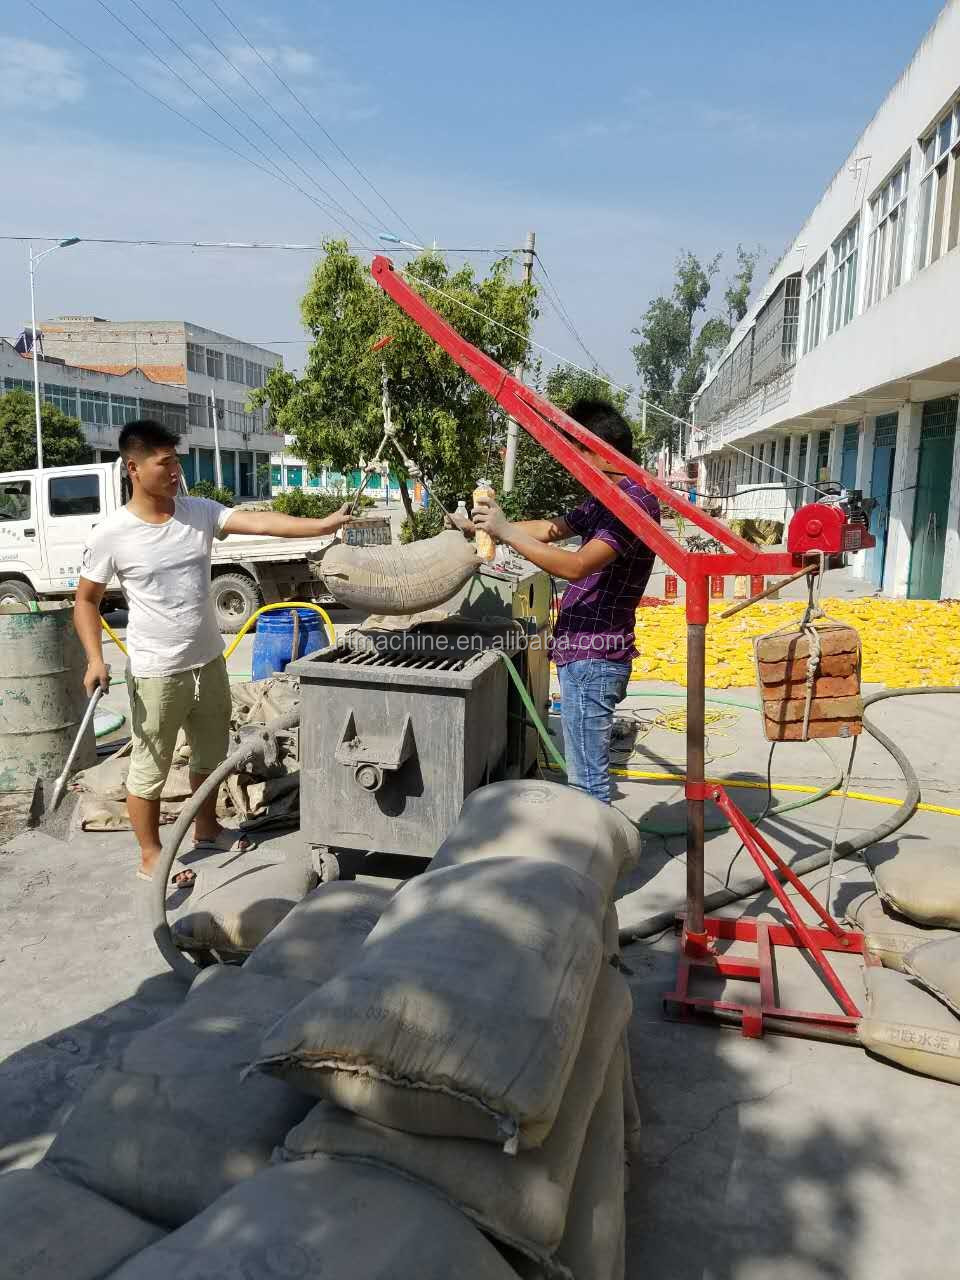 New Tech Foaming And Pumping intergrated Together Hot Sale Cement Foaming Machine